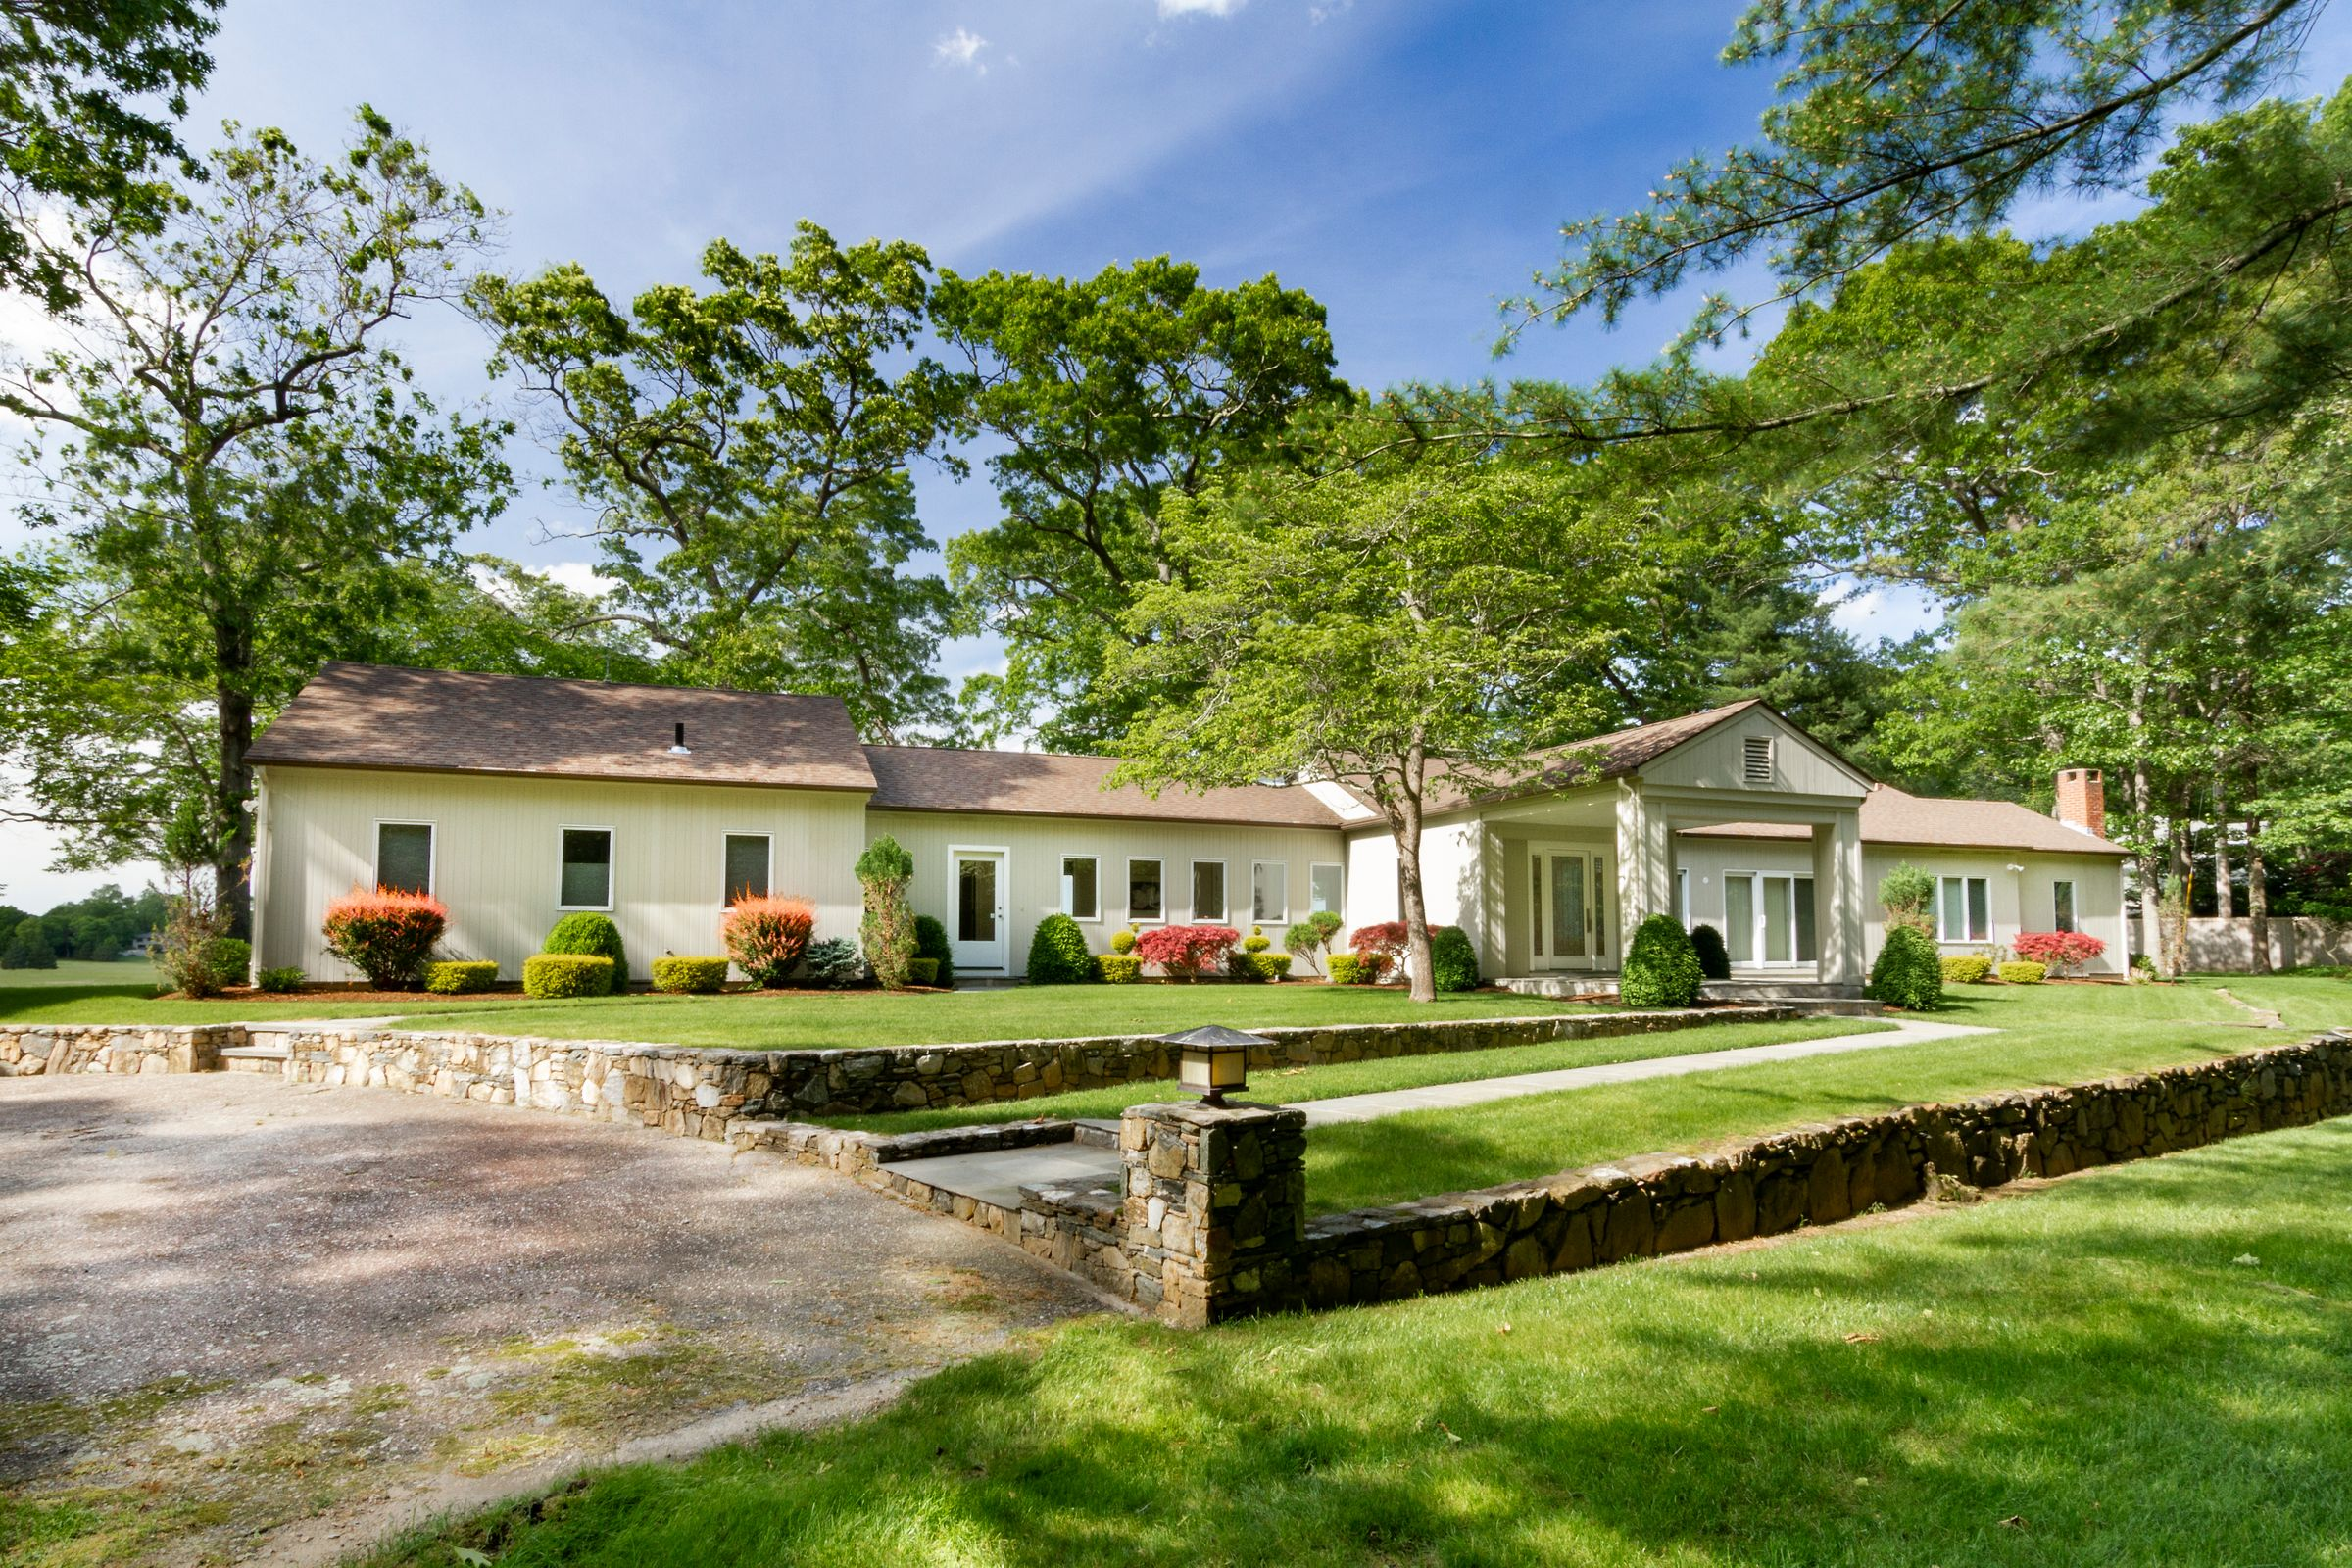 House Of The Week: A North Kingstown Contemporary In A Private Setting